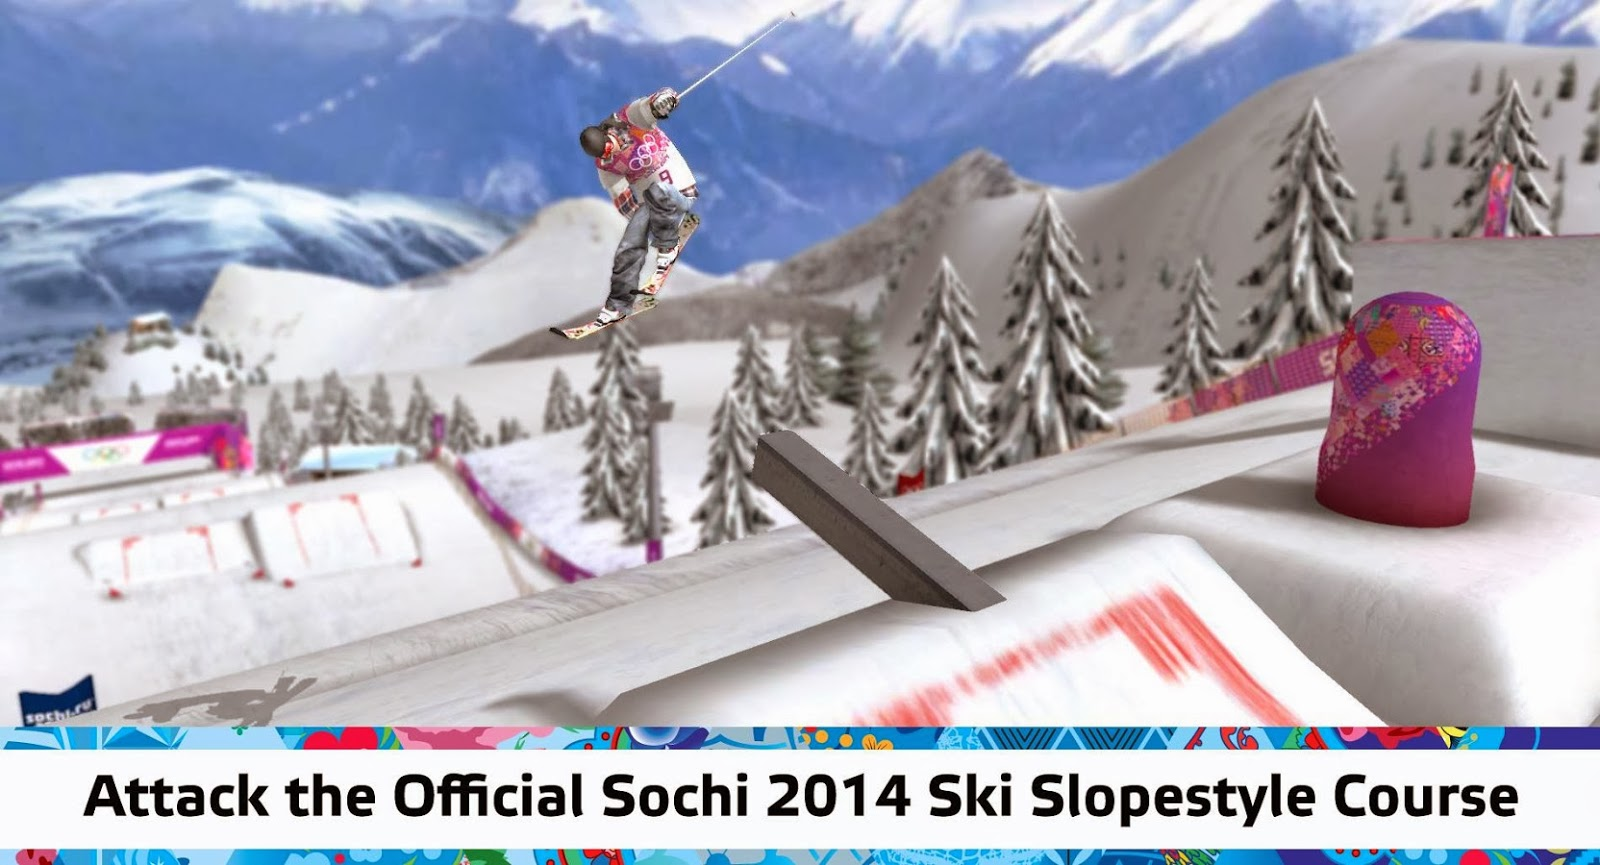 Sochi 2014: Ski Slopestyle Android Game Download,